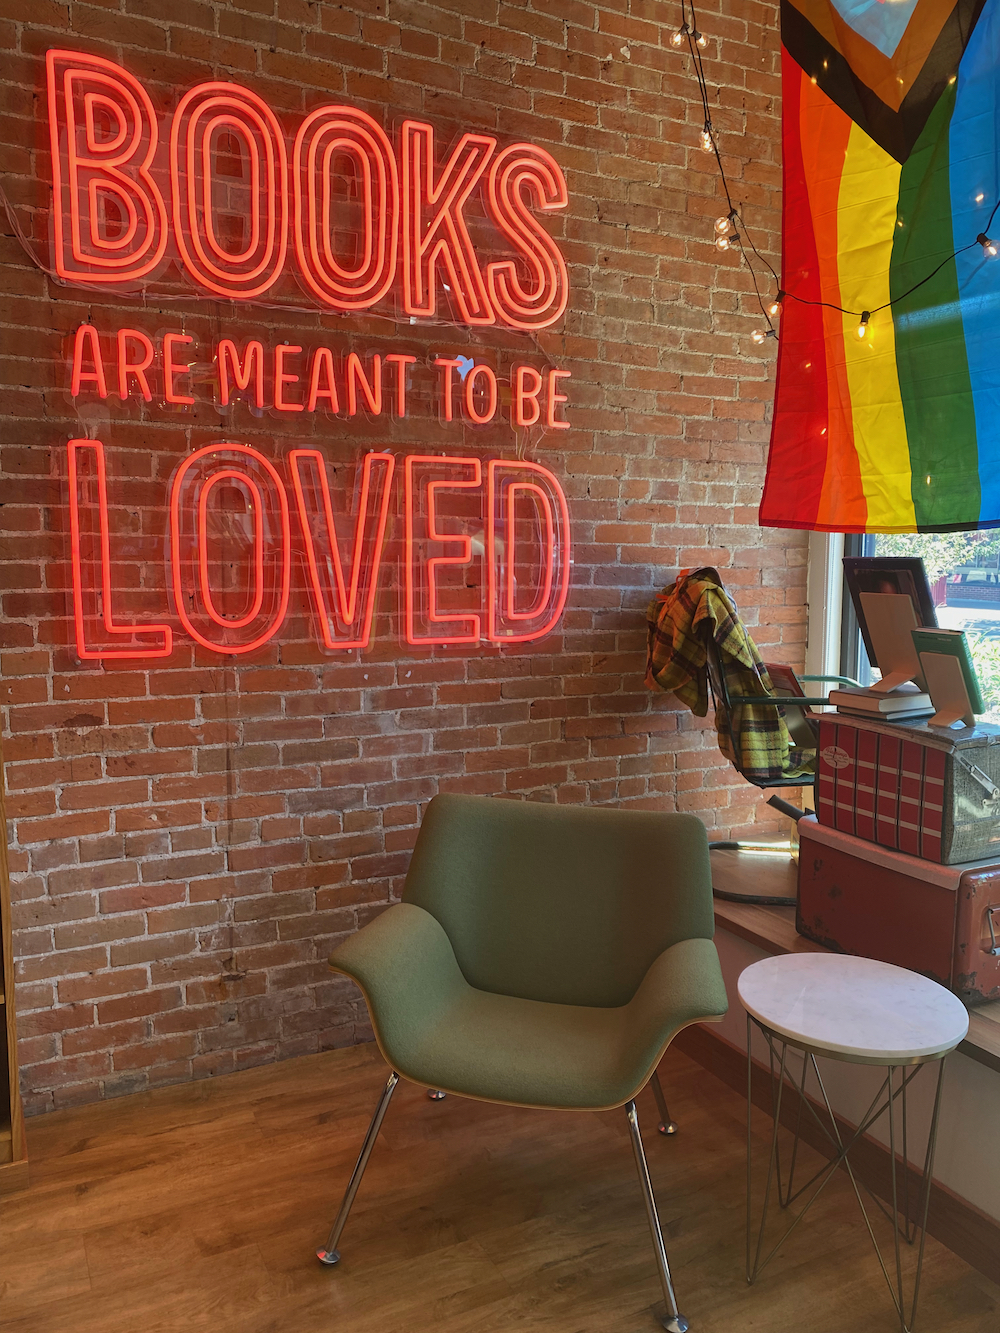 Books are Meant to Be Loved neon sign at Dogeared Books in Ames, Iowa